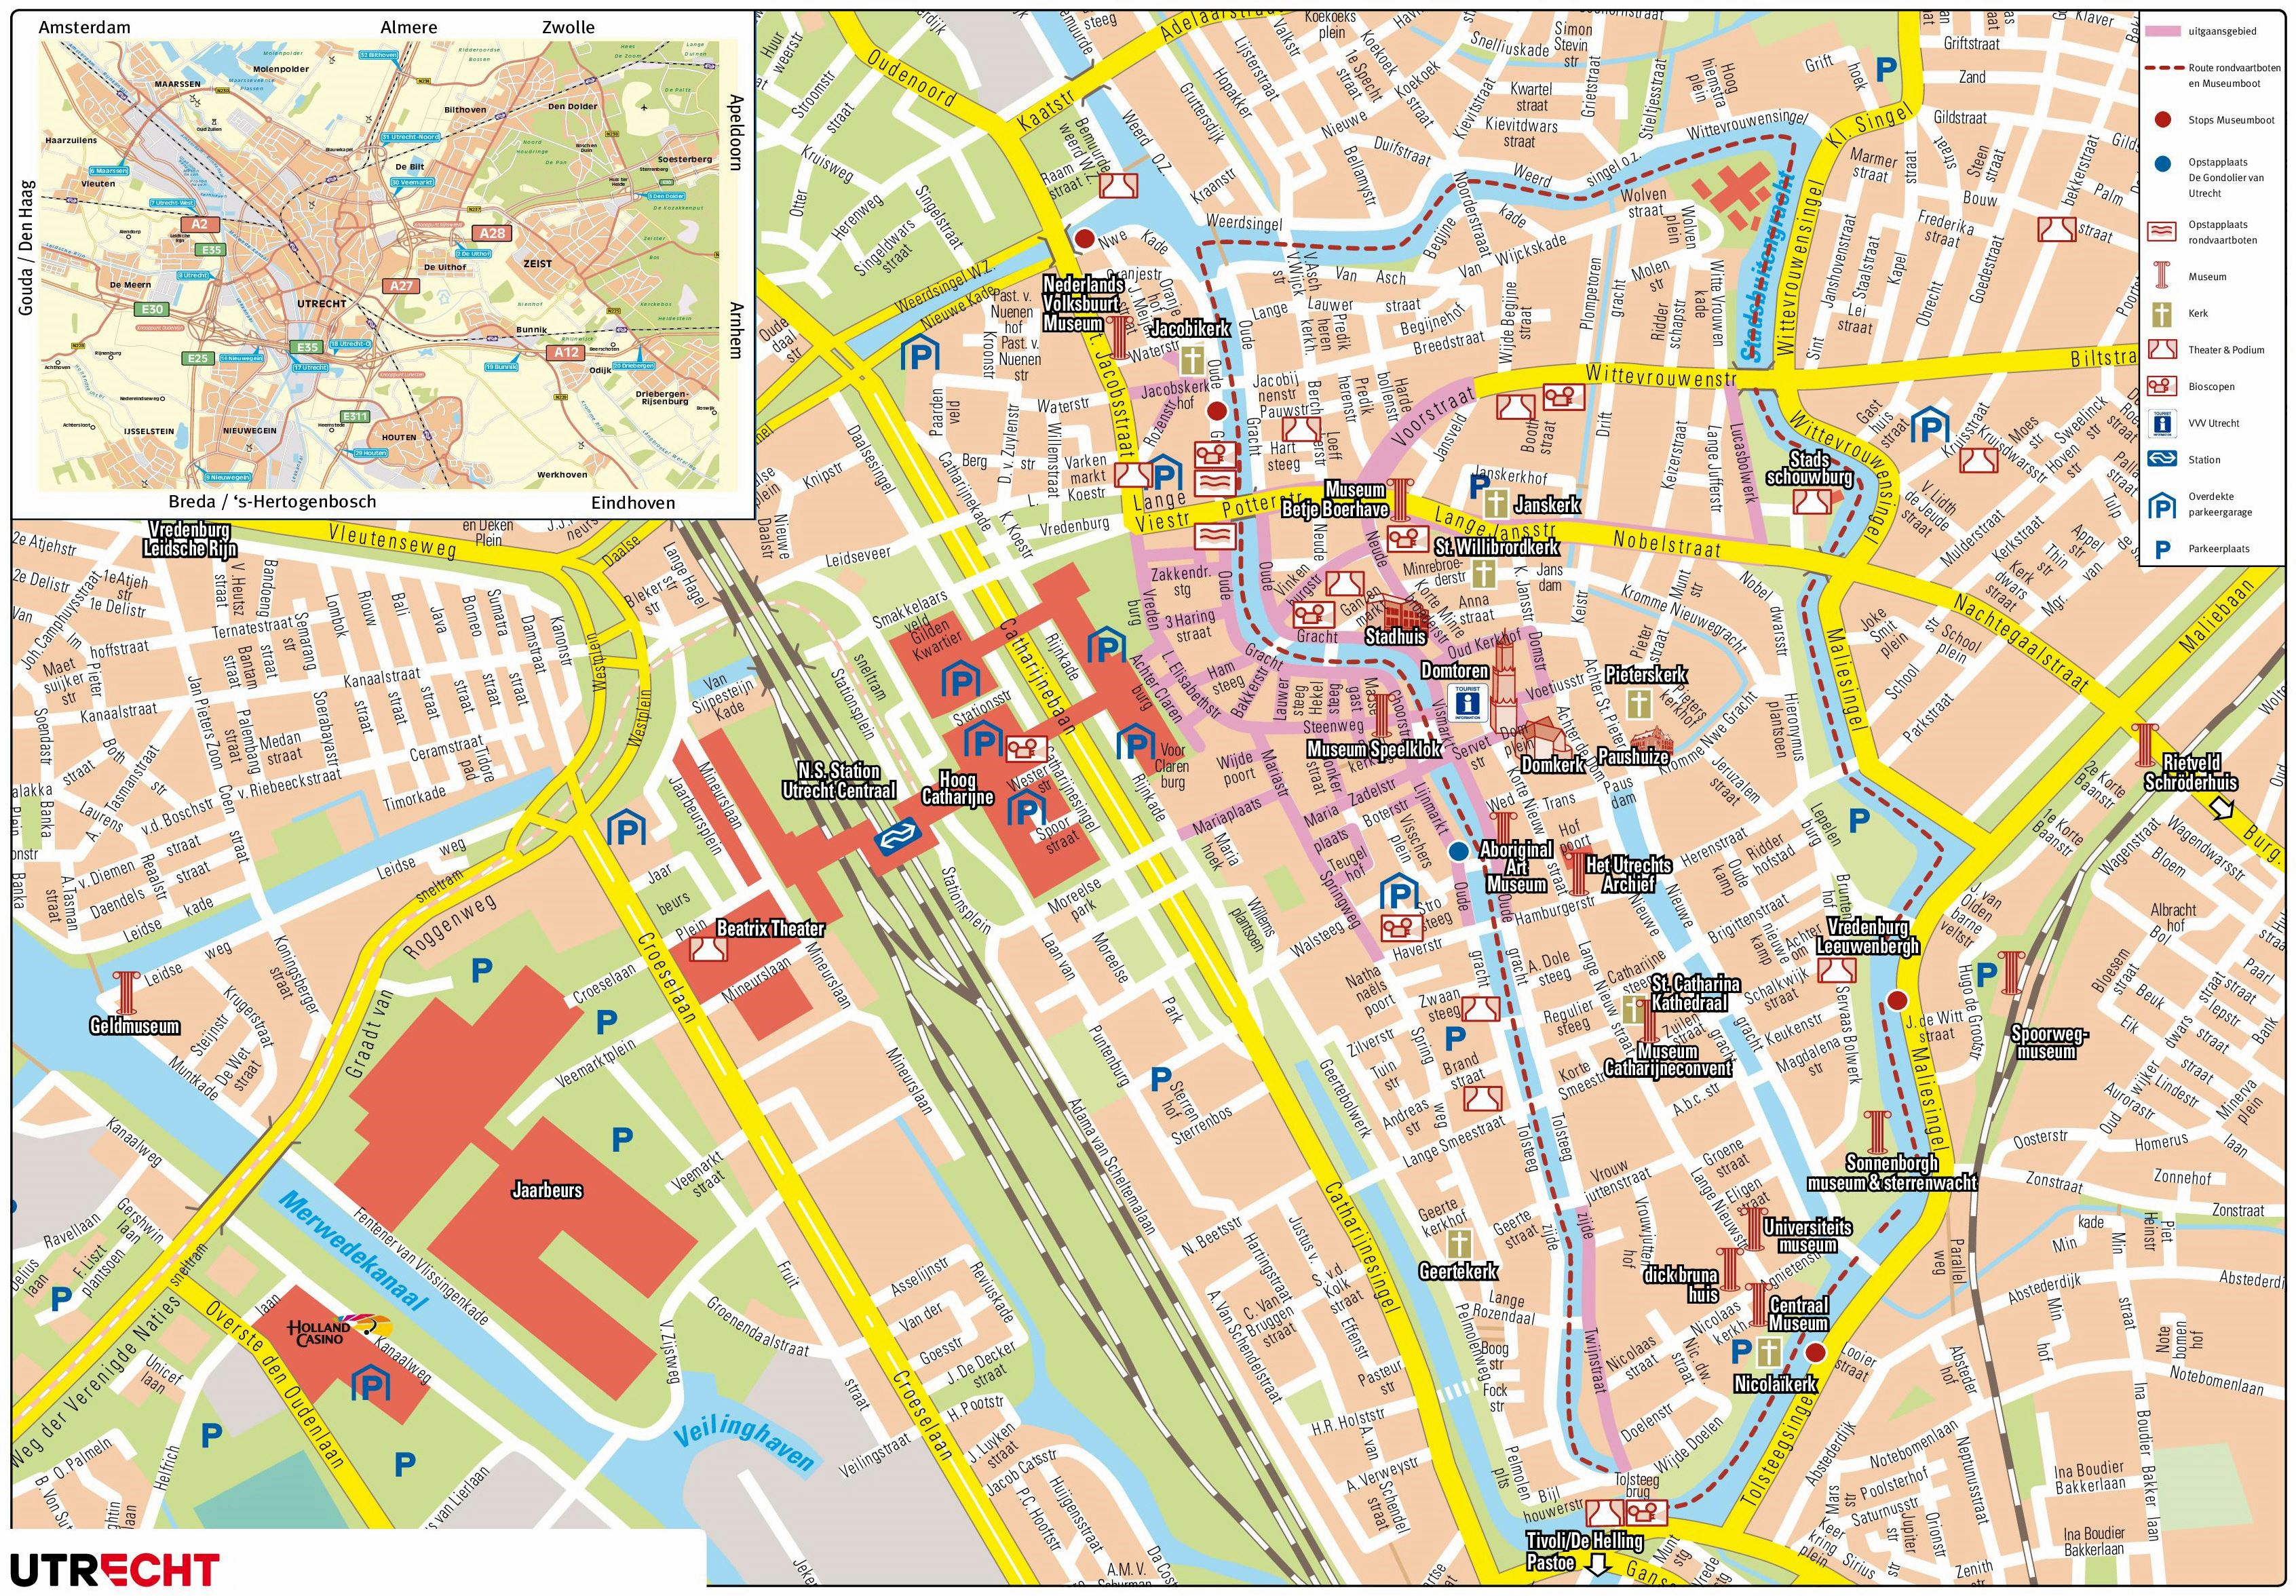 Large Utrecht Maps for Free Download and Print HighResolution and